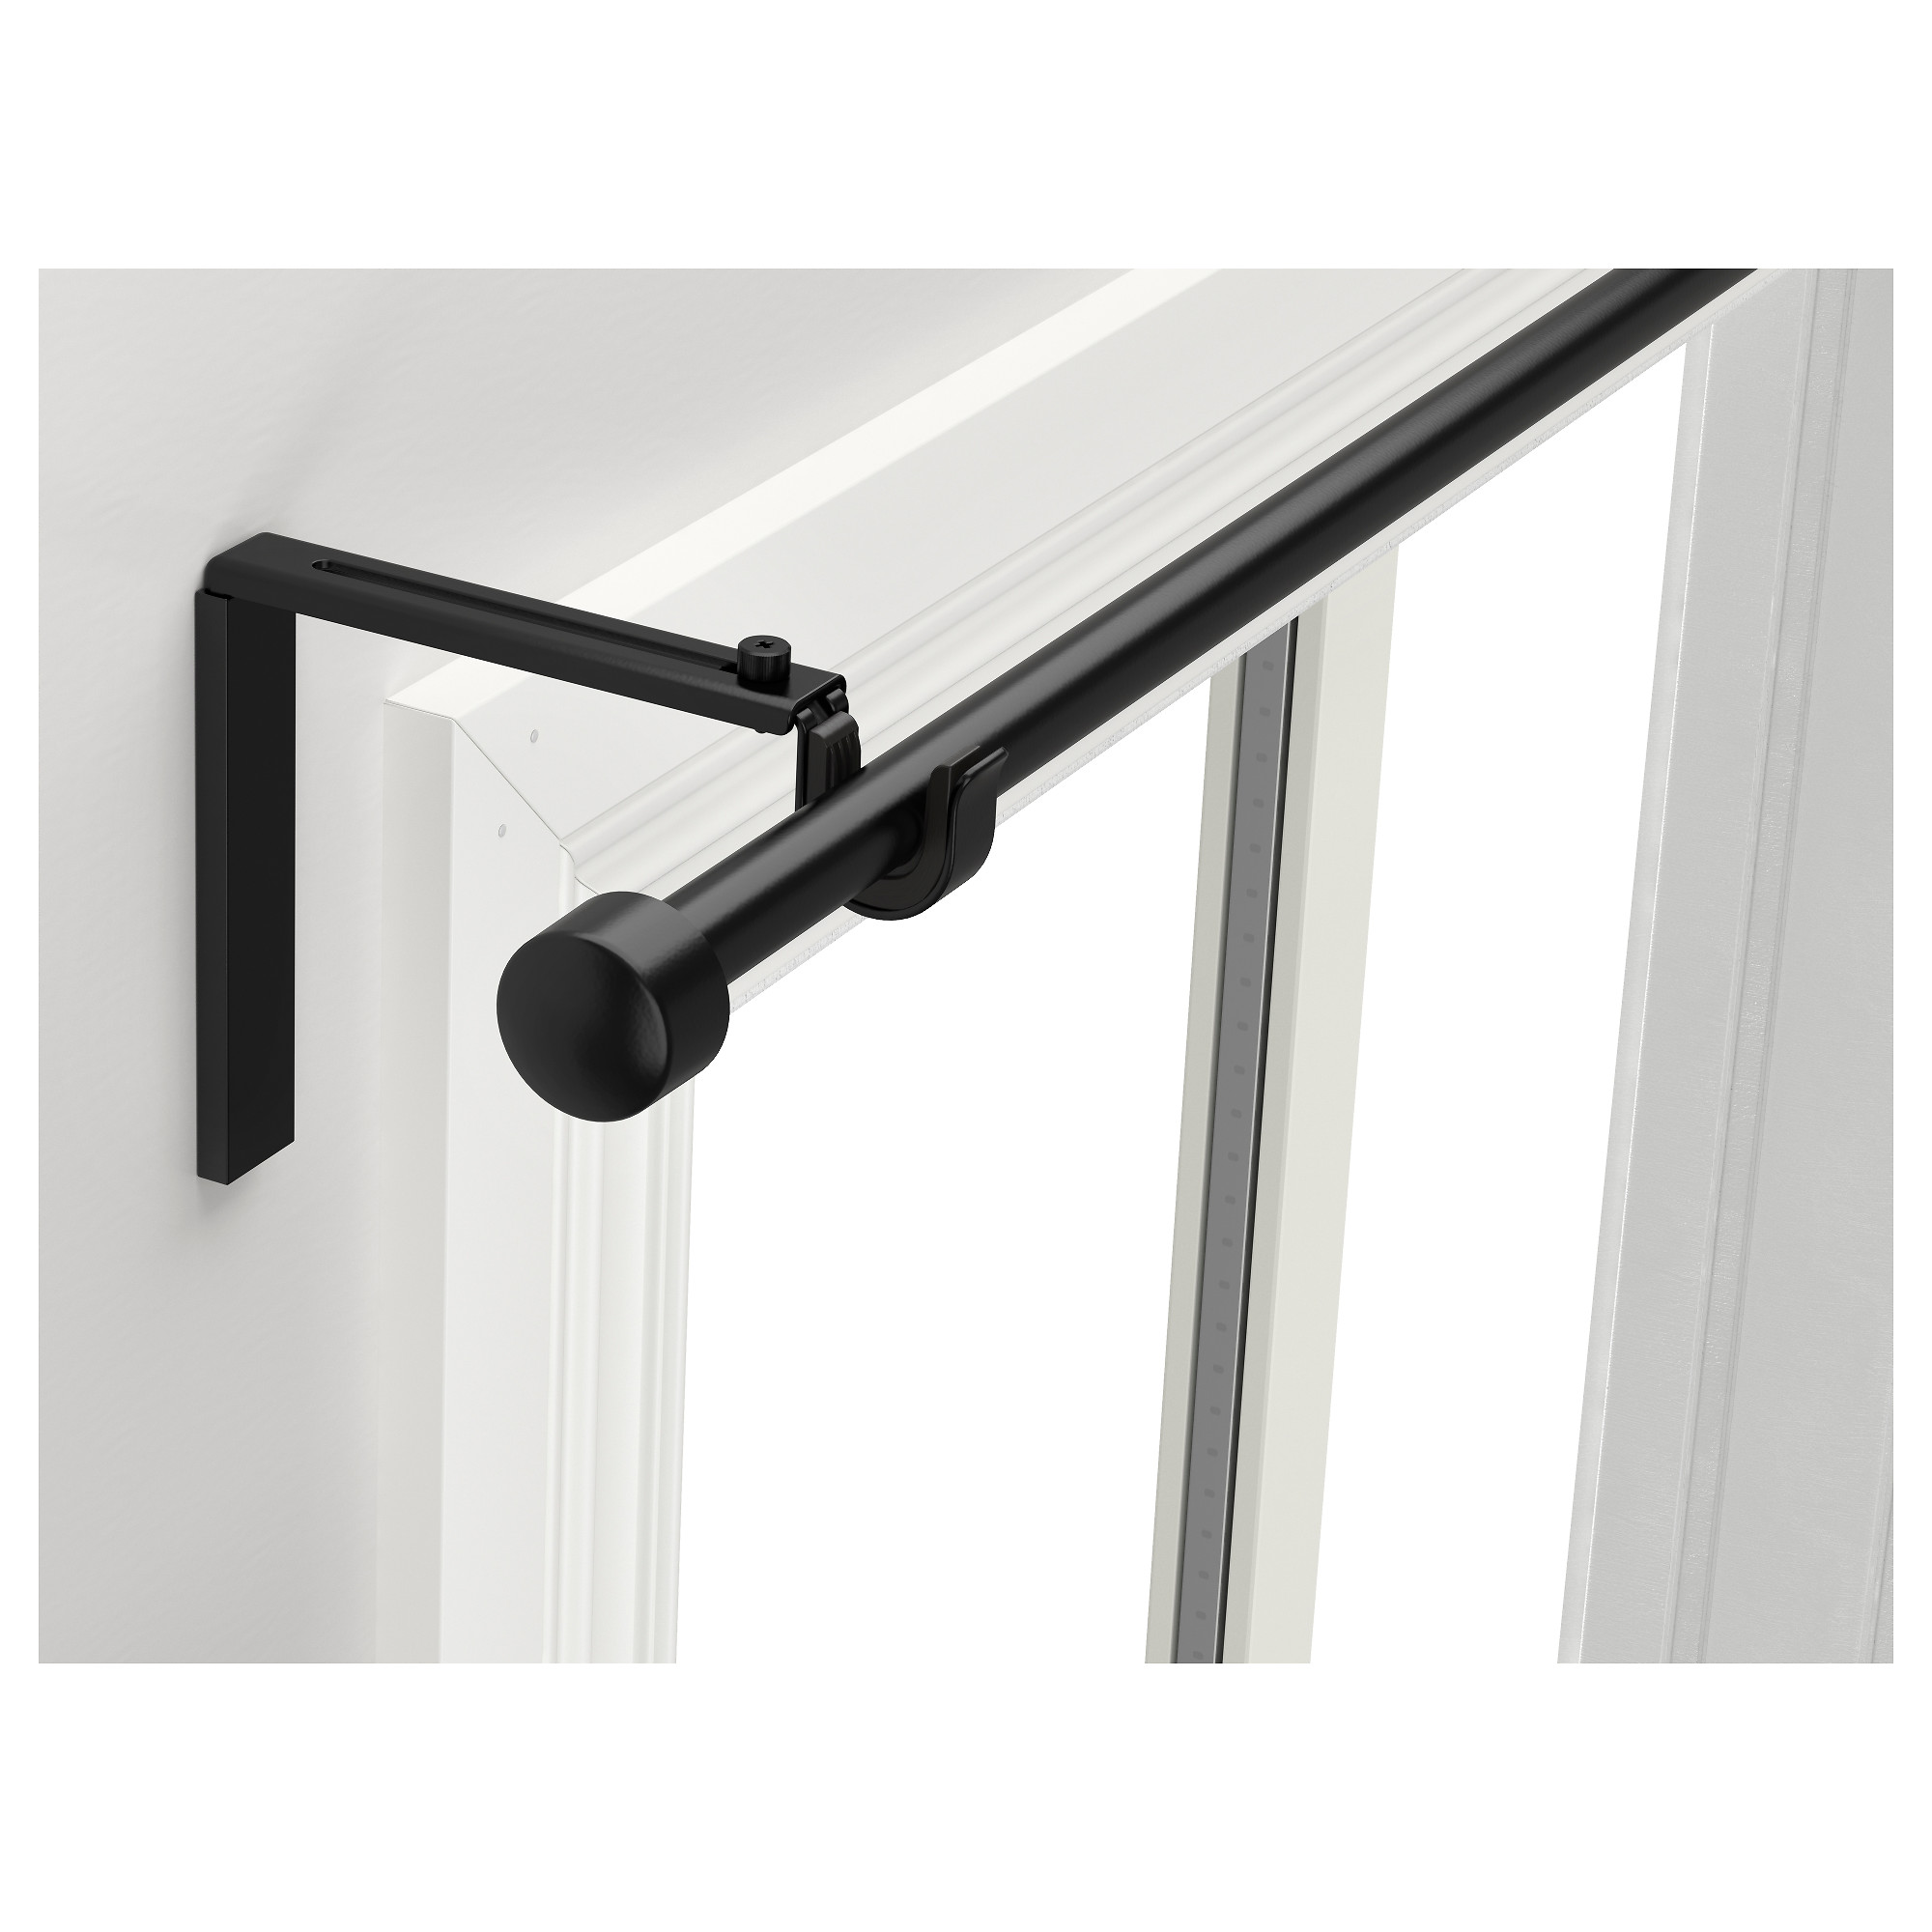 RÄCKA Curtain Rod Combination   IKEA  Black Curtain Rod